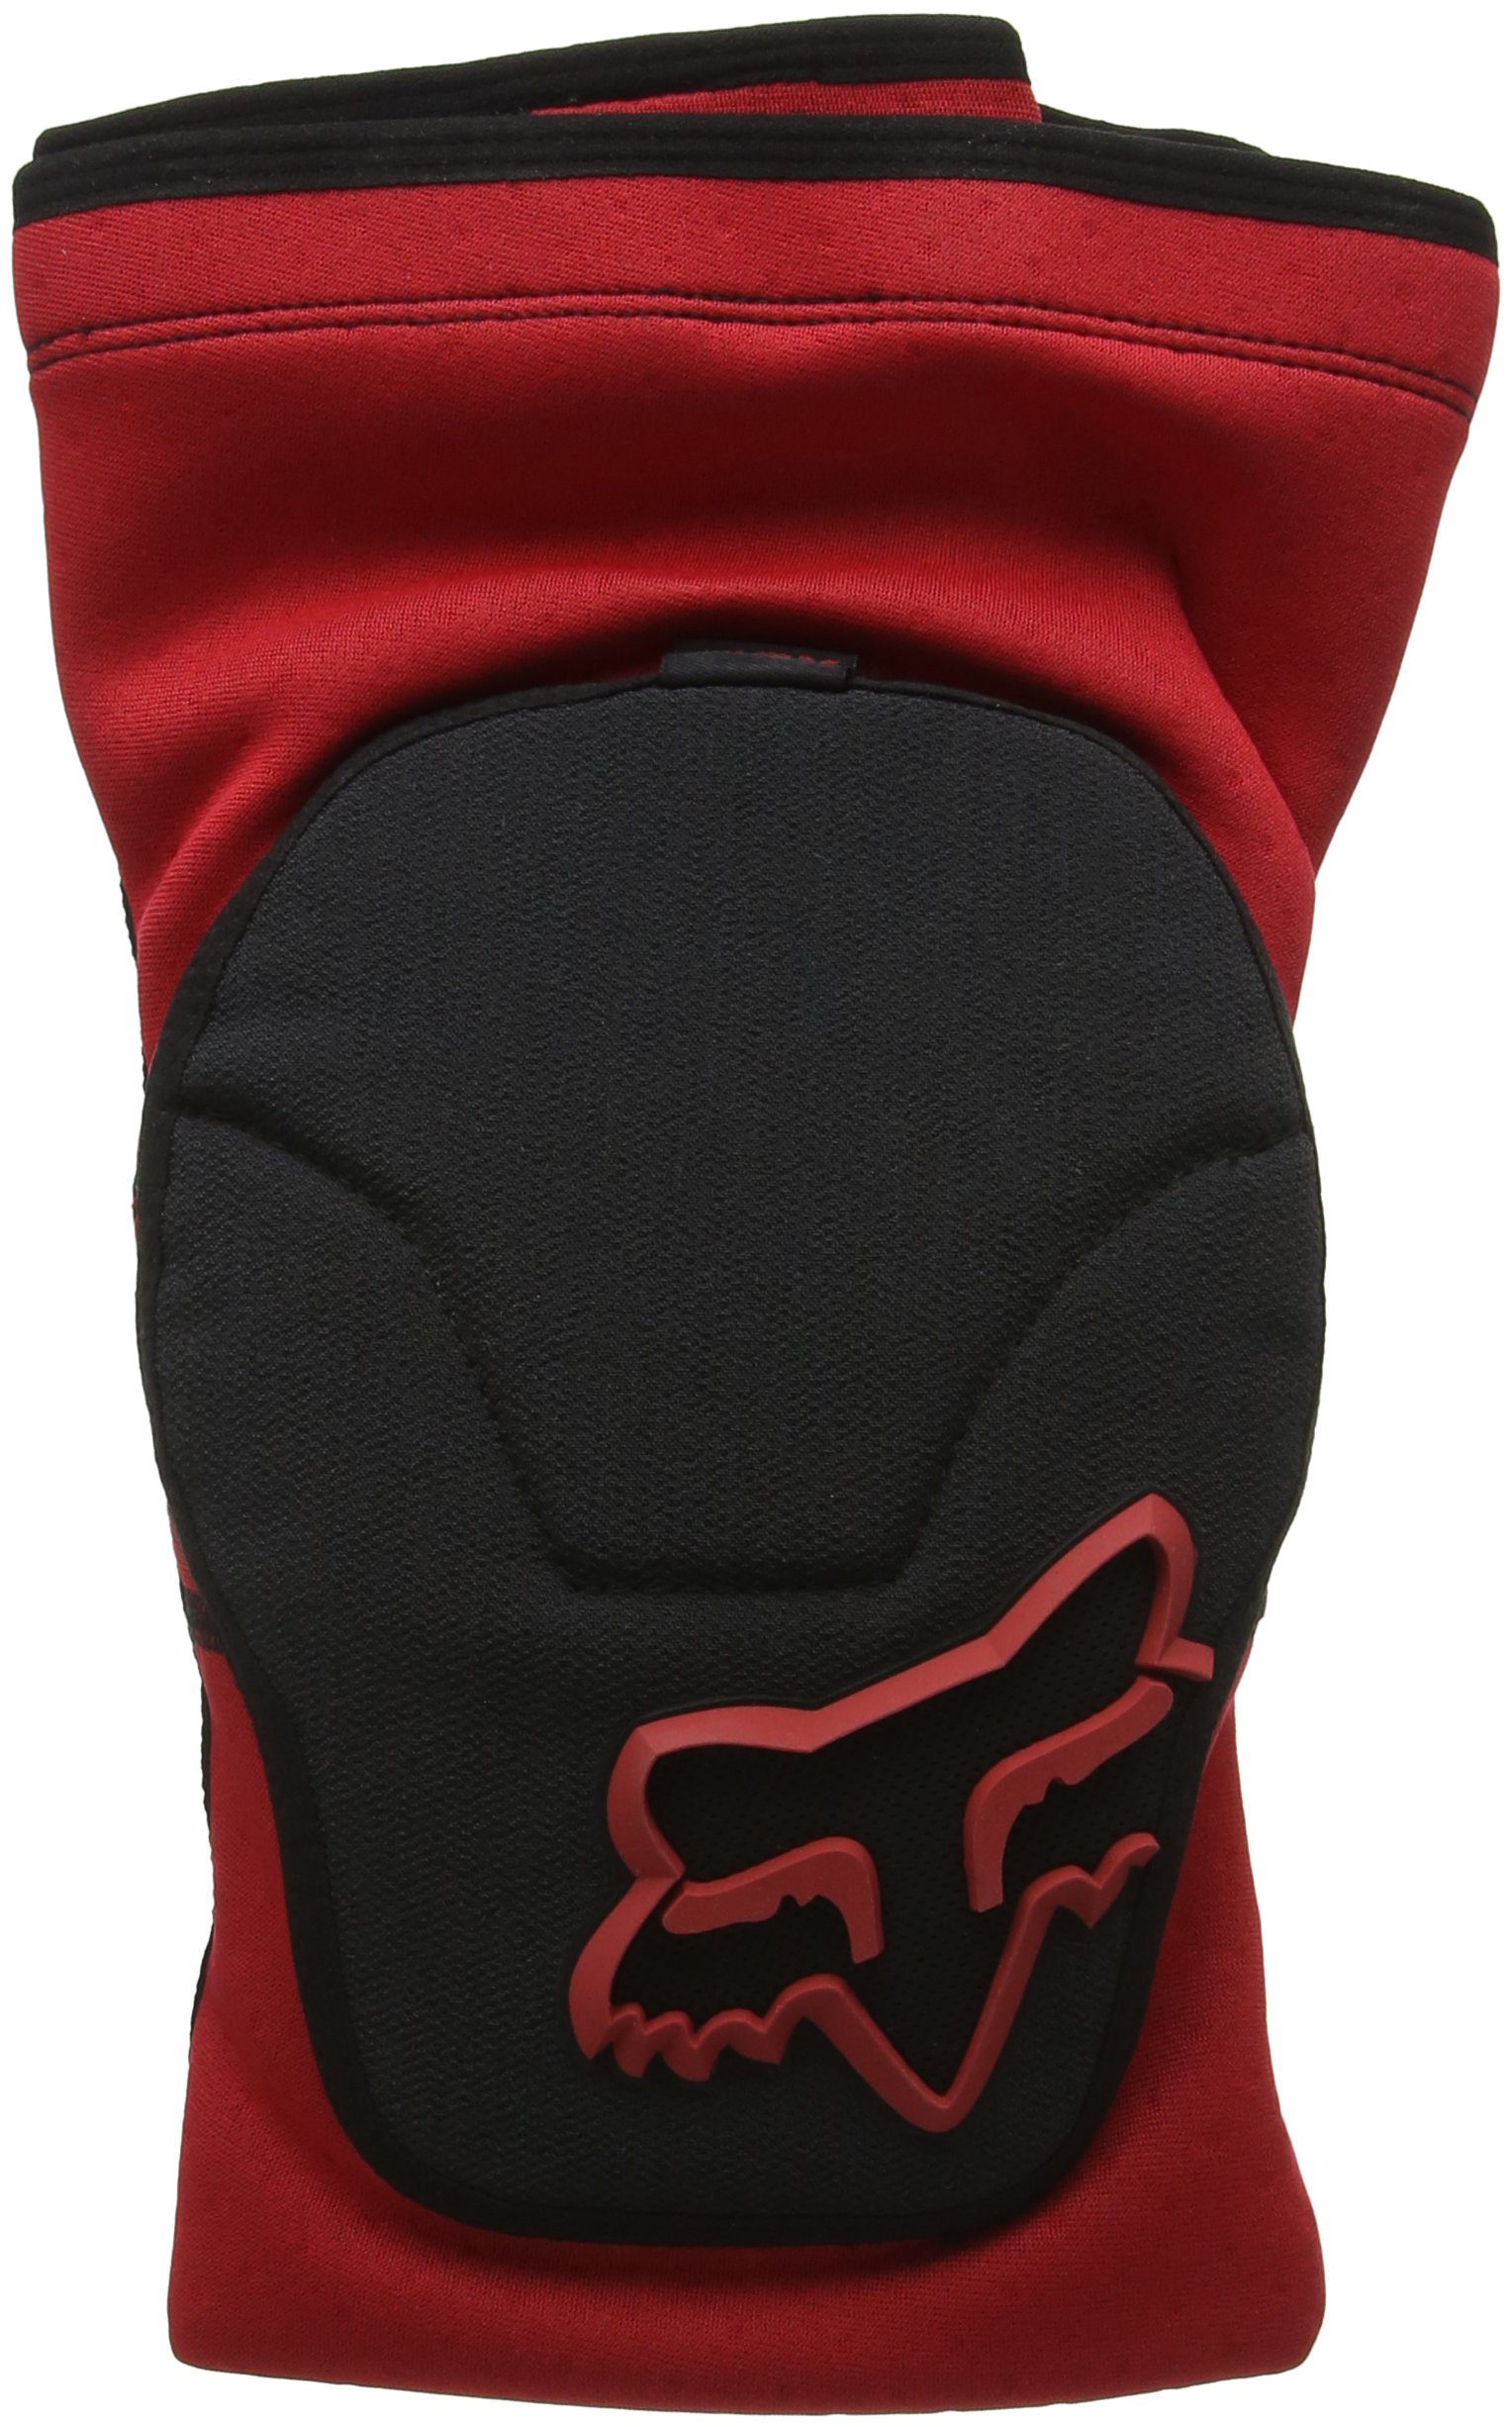 Fox Racing Launch Enduro Adult Knee/Shin Guard MX Motorcycle Body Armor - Red/X-Large